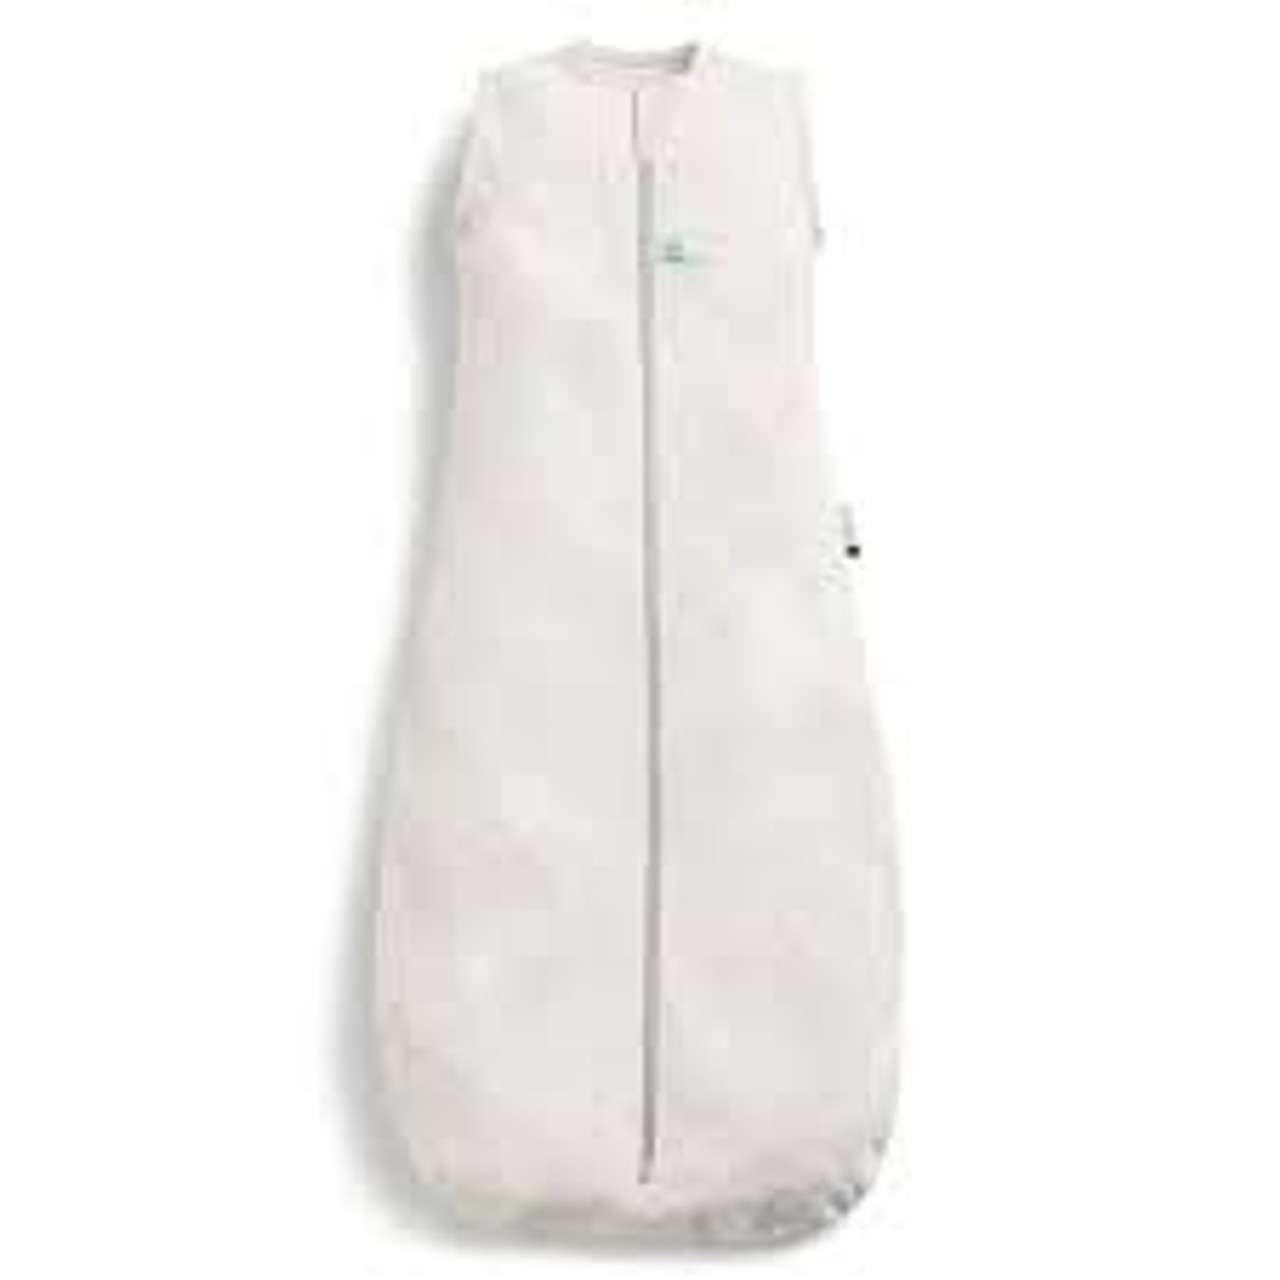 ergoPouch Jersey Sleeping Bag 0.2 TOG 3-12 months Grey Marle at Baby Barn Discounts Ergopouch lightweight 0.2 TOG Jersey Sleeping Bag is designed for a little one during hot humid summer.